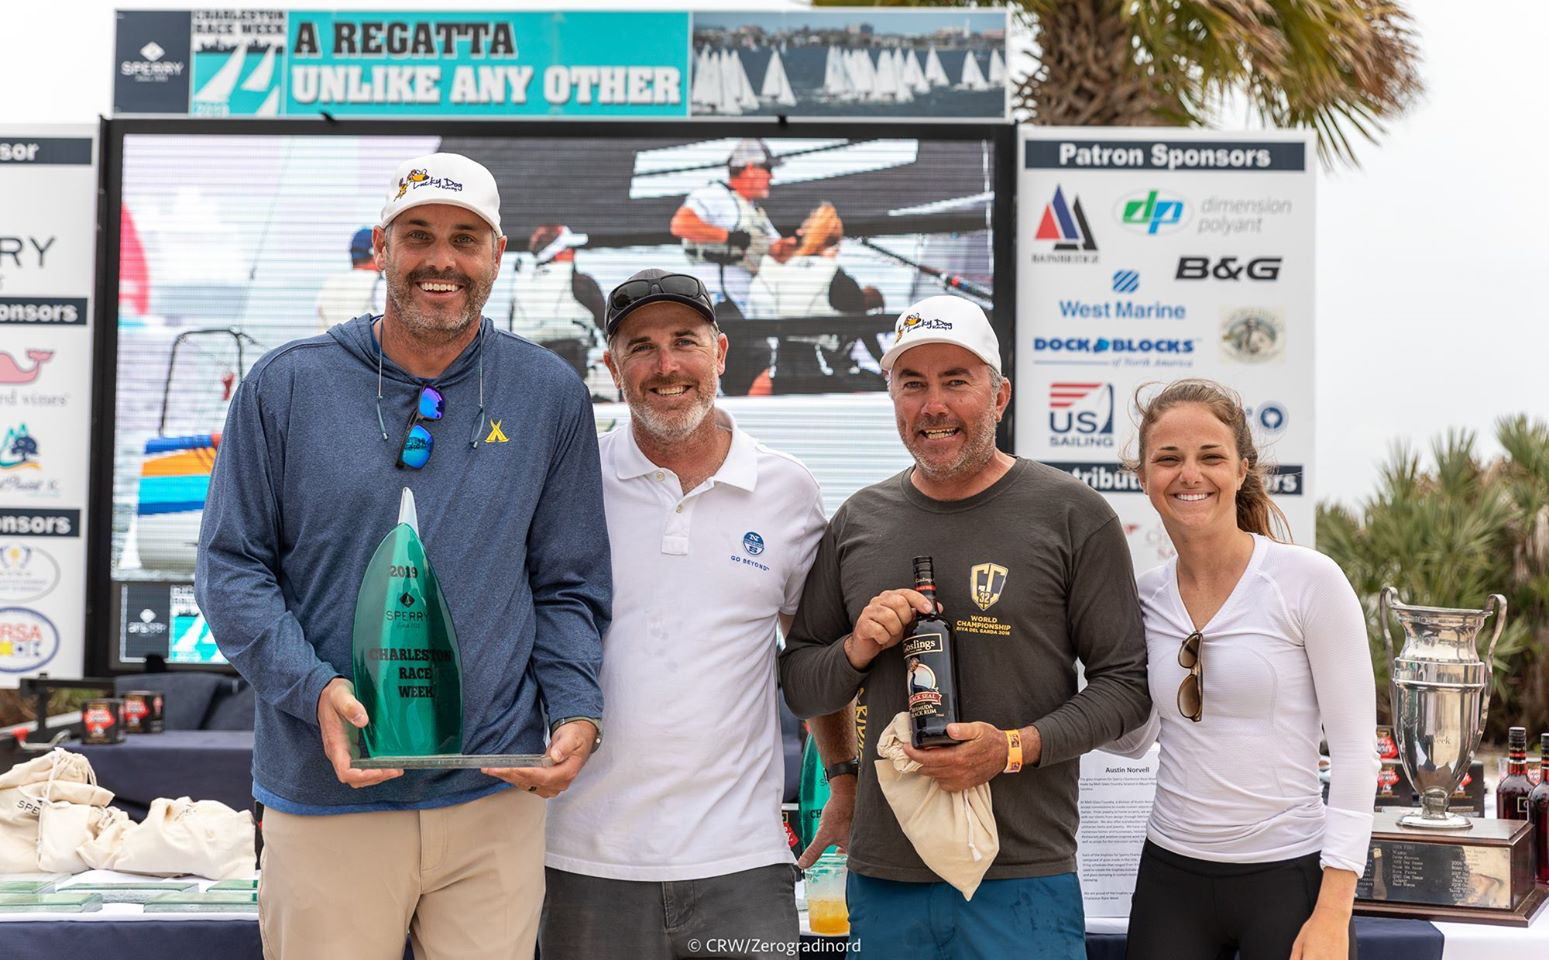 Travis Weisleder and his team of Lucky Dog / Gill Race Team - 2019 Champions of the Sperry Charleston Race Week in Melges 24 class! Photo Zerogradinord / Mauro Melandri